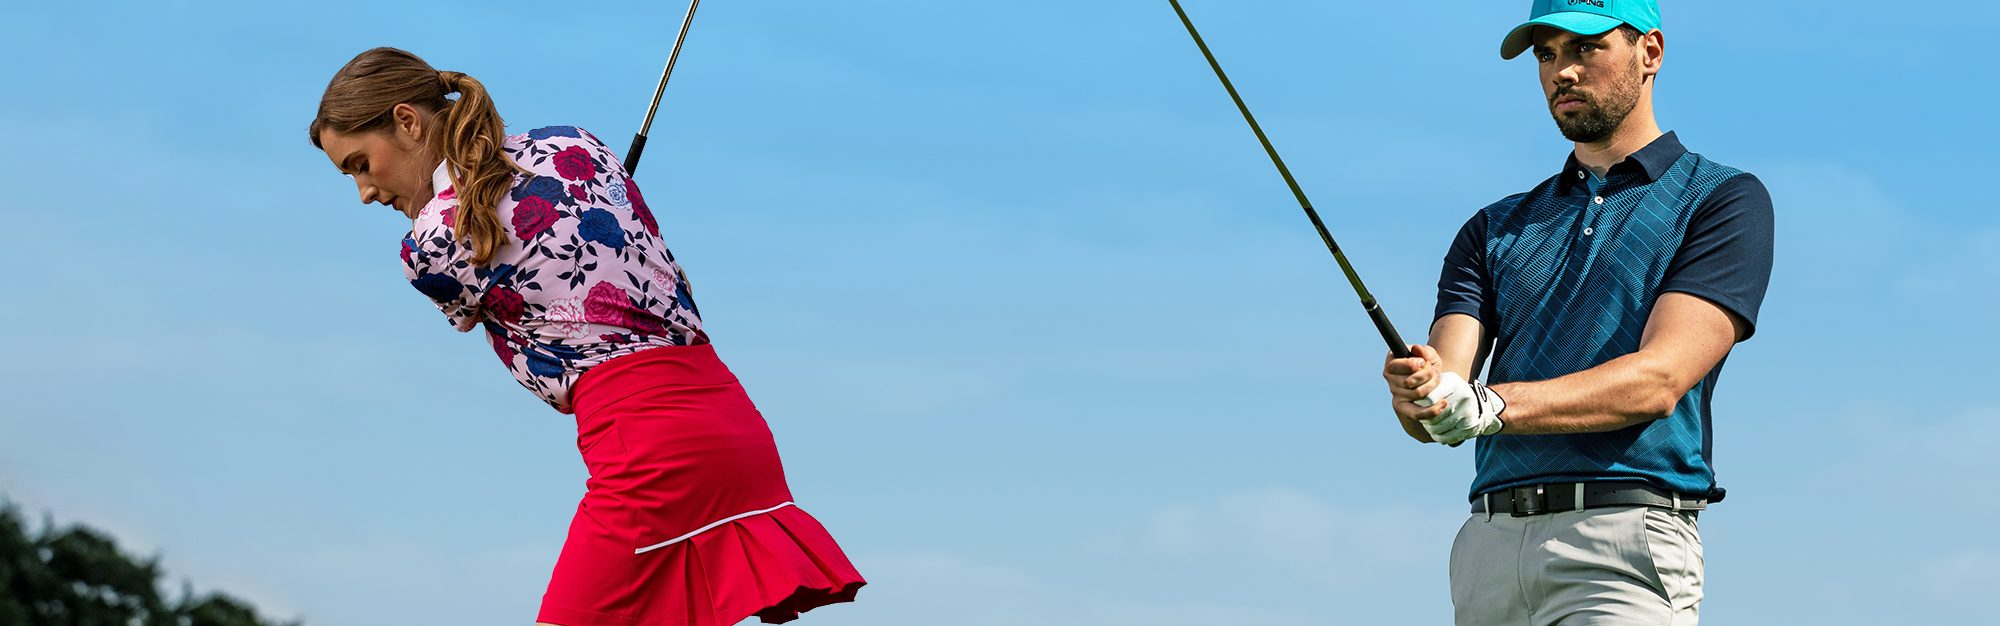 Ping Collection apparel: Get the right look this summer